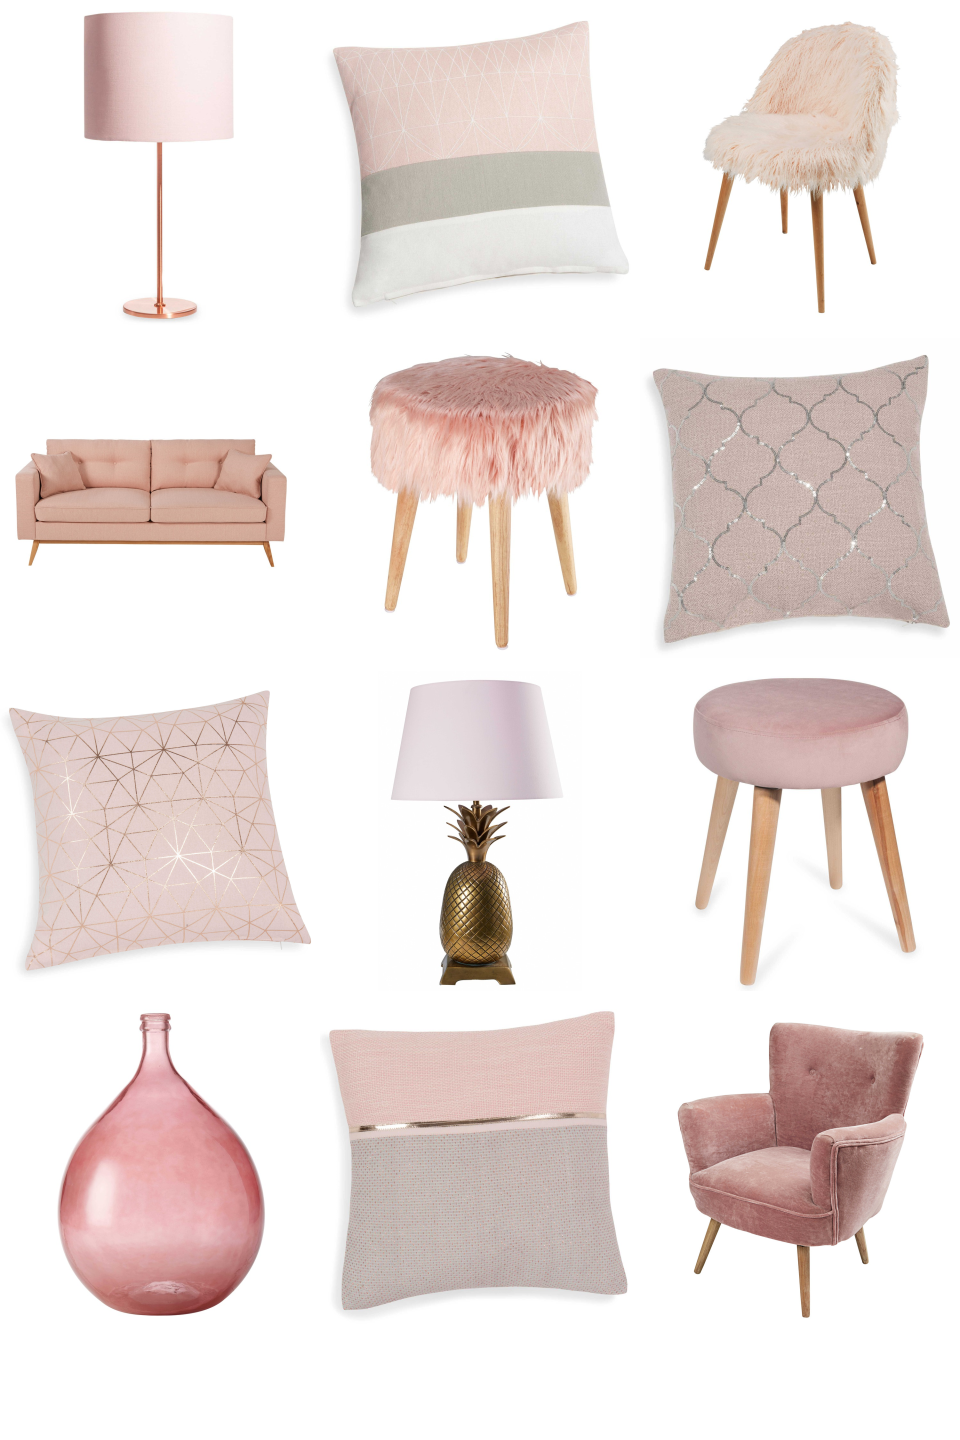 So Blush Maisons Du Monde S Home Furnishing Ideas